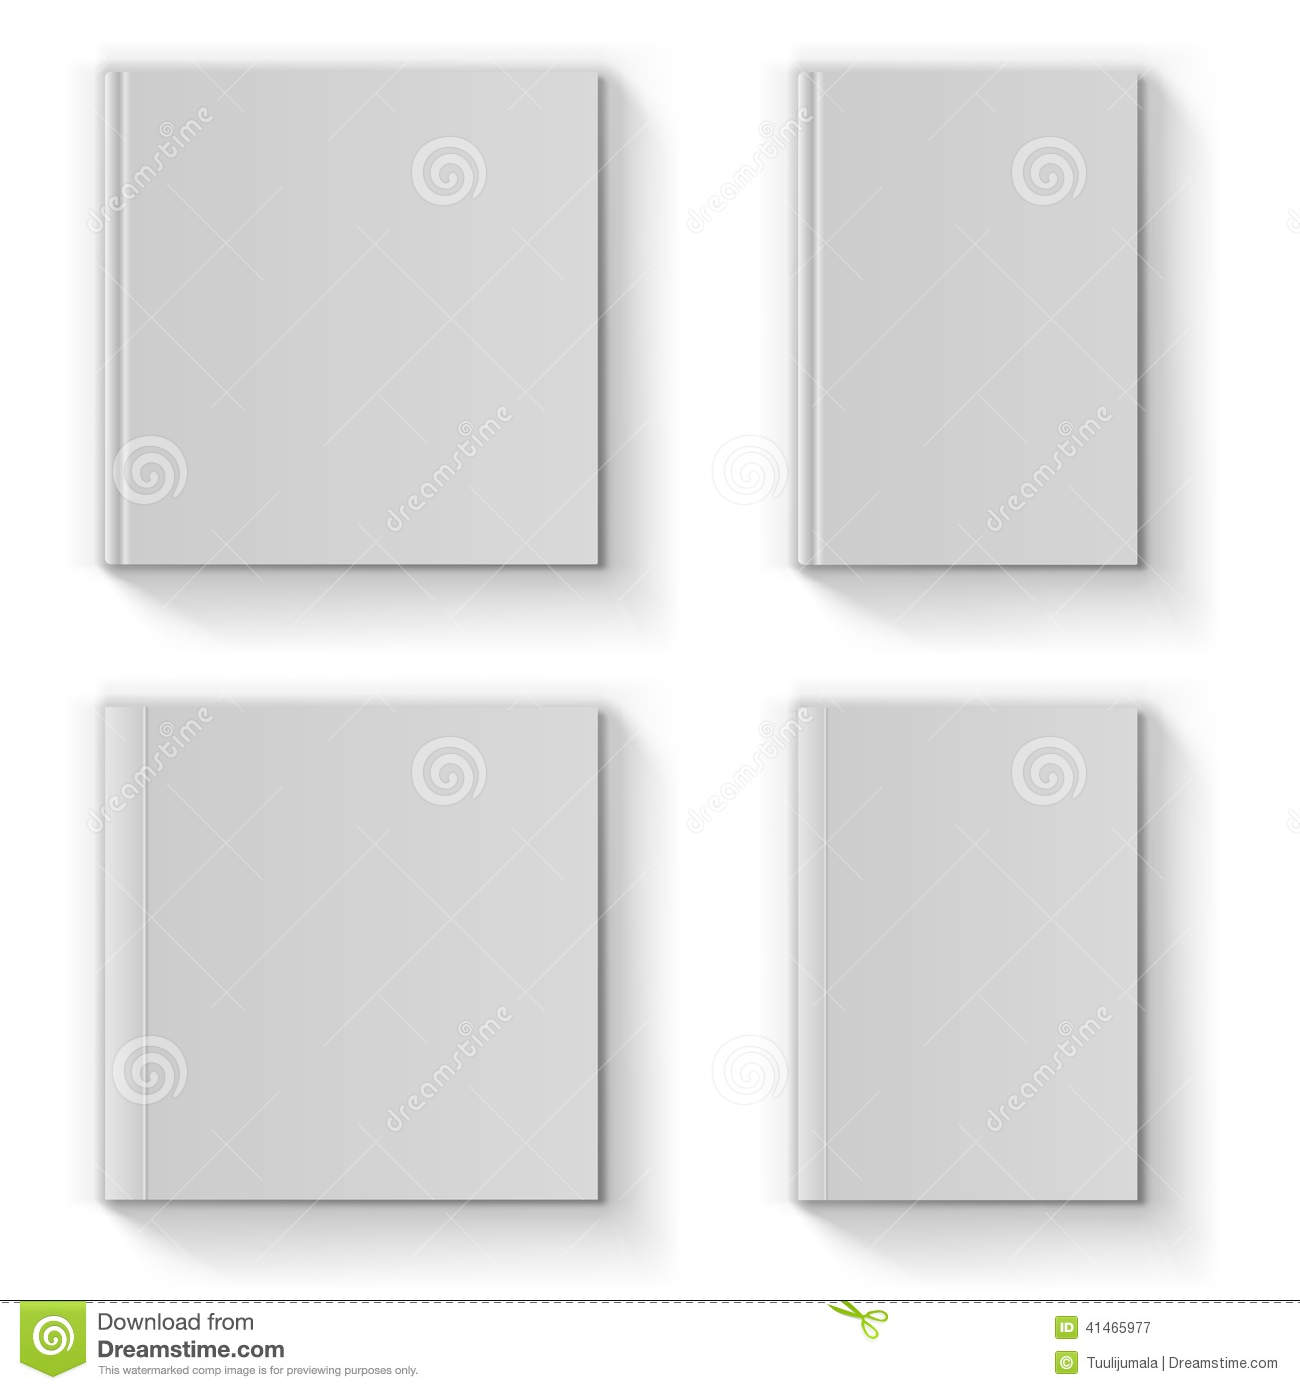 Book Cover Design Isolated Over Colorful Background : Blank book cover template stock vector image